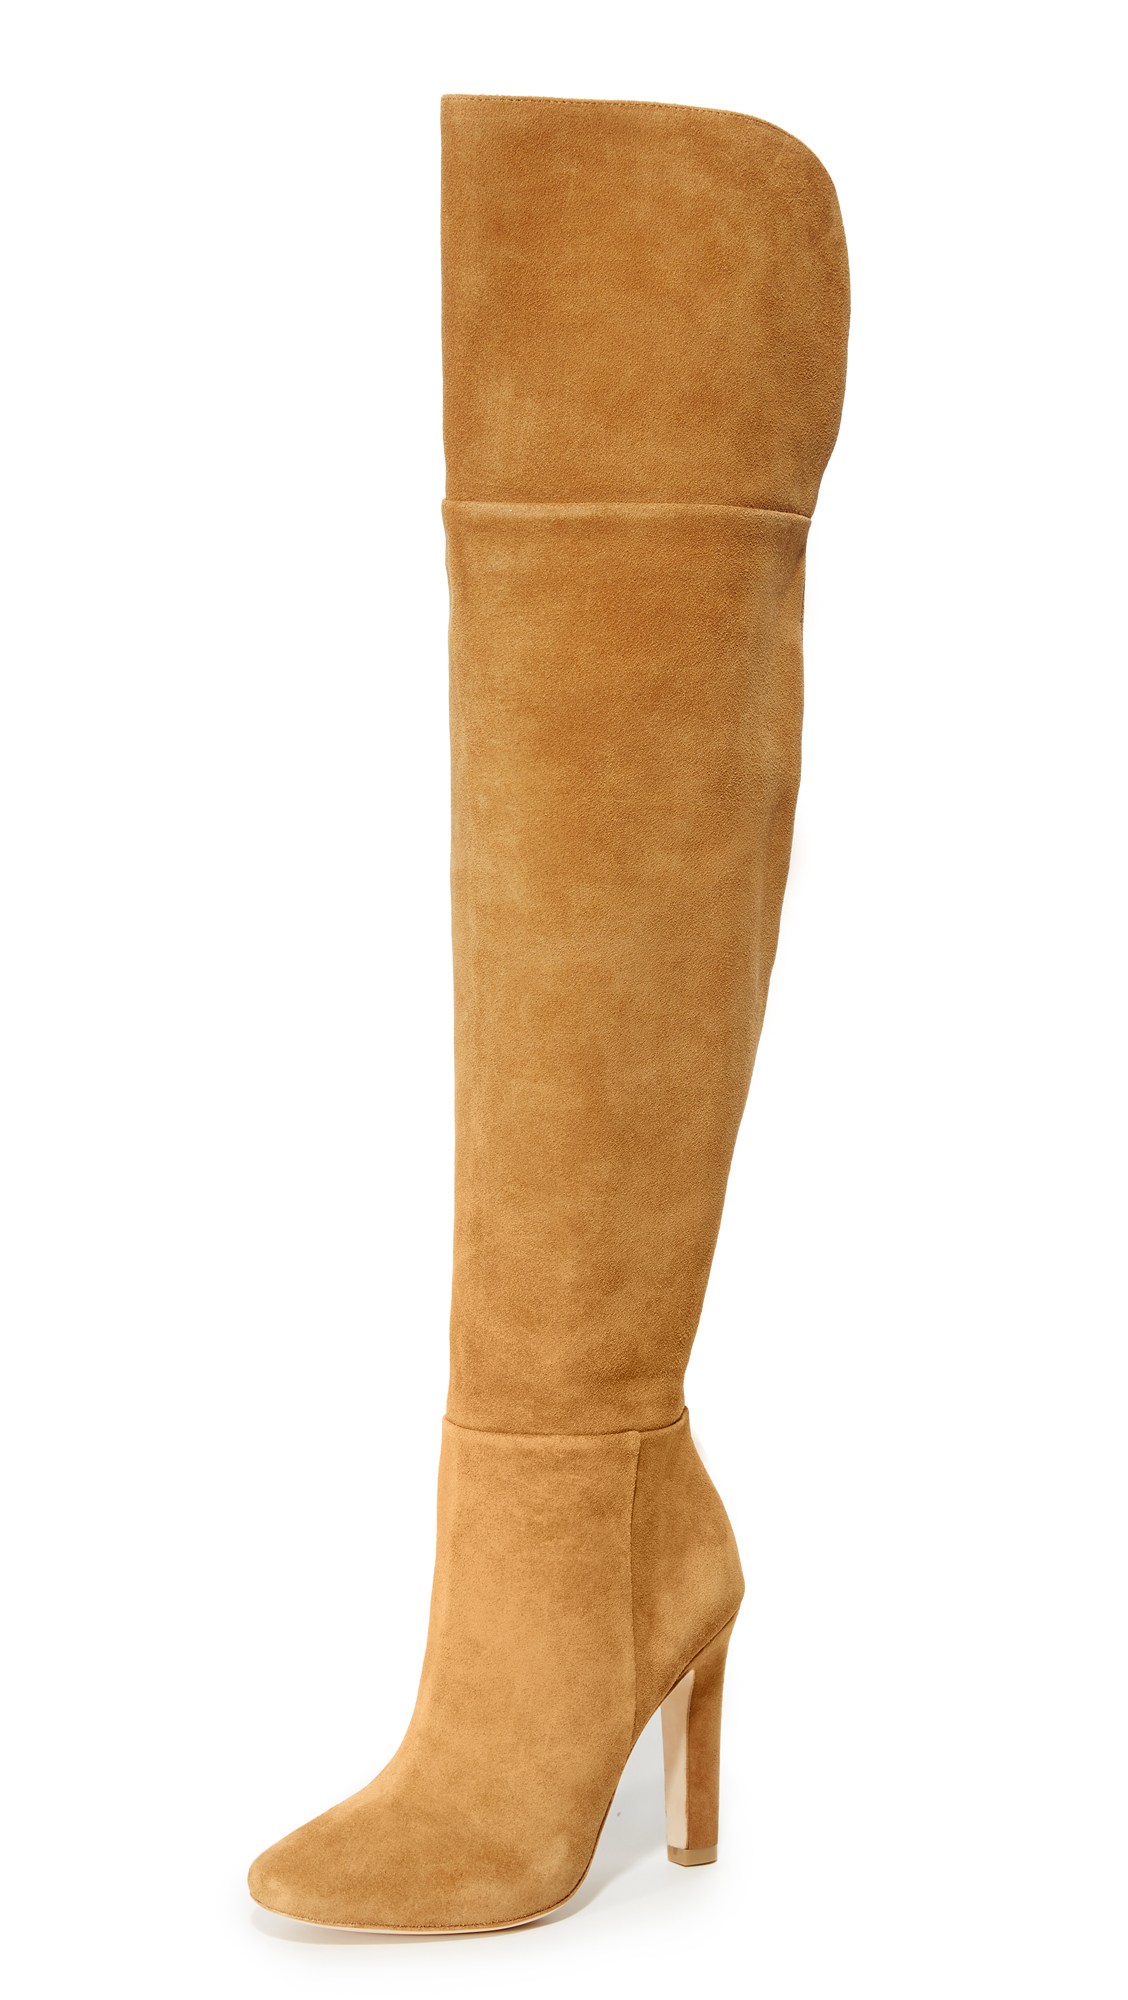 Joie Bentlee Tall Boots - Chestnut